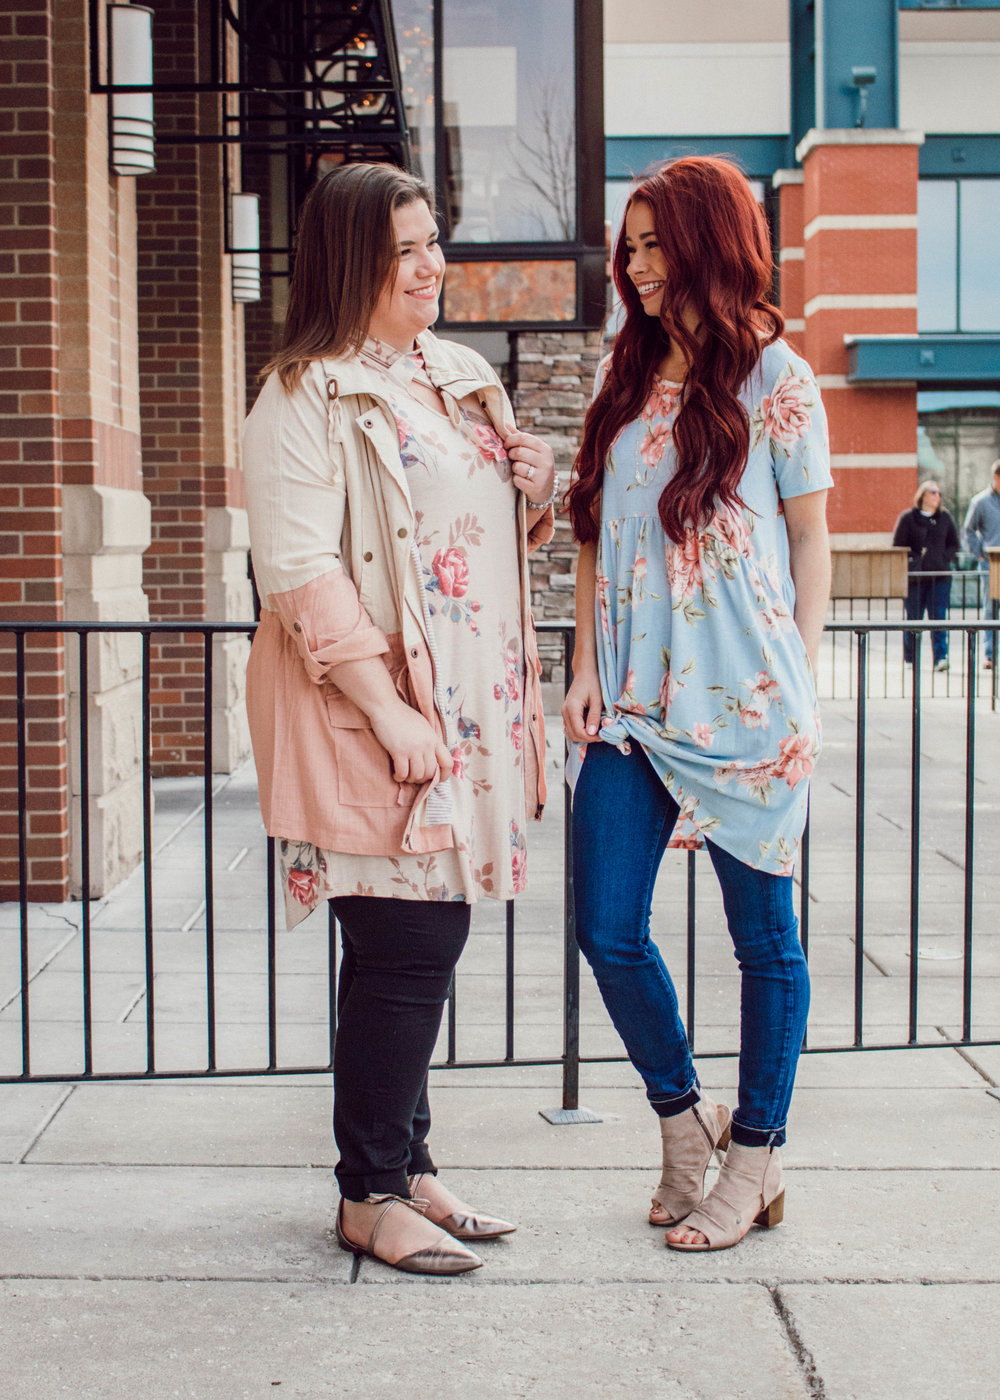 soali-30.jpg - 5 Tips to help you dress for your body type by popular Indianapolis fashion blogger Trendy in Indy